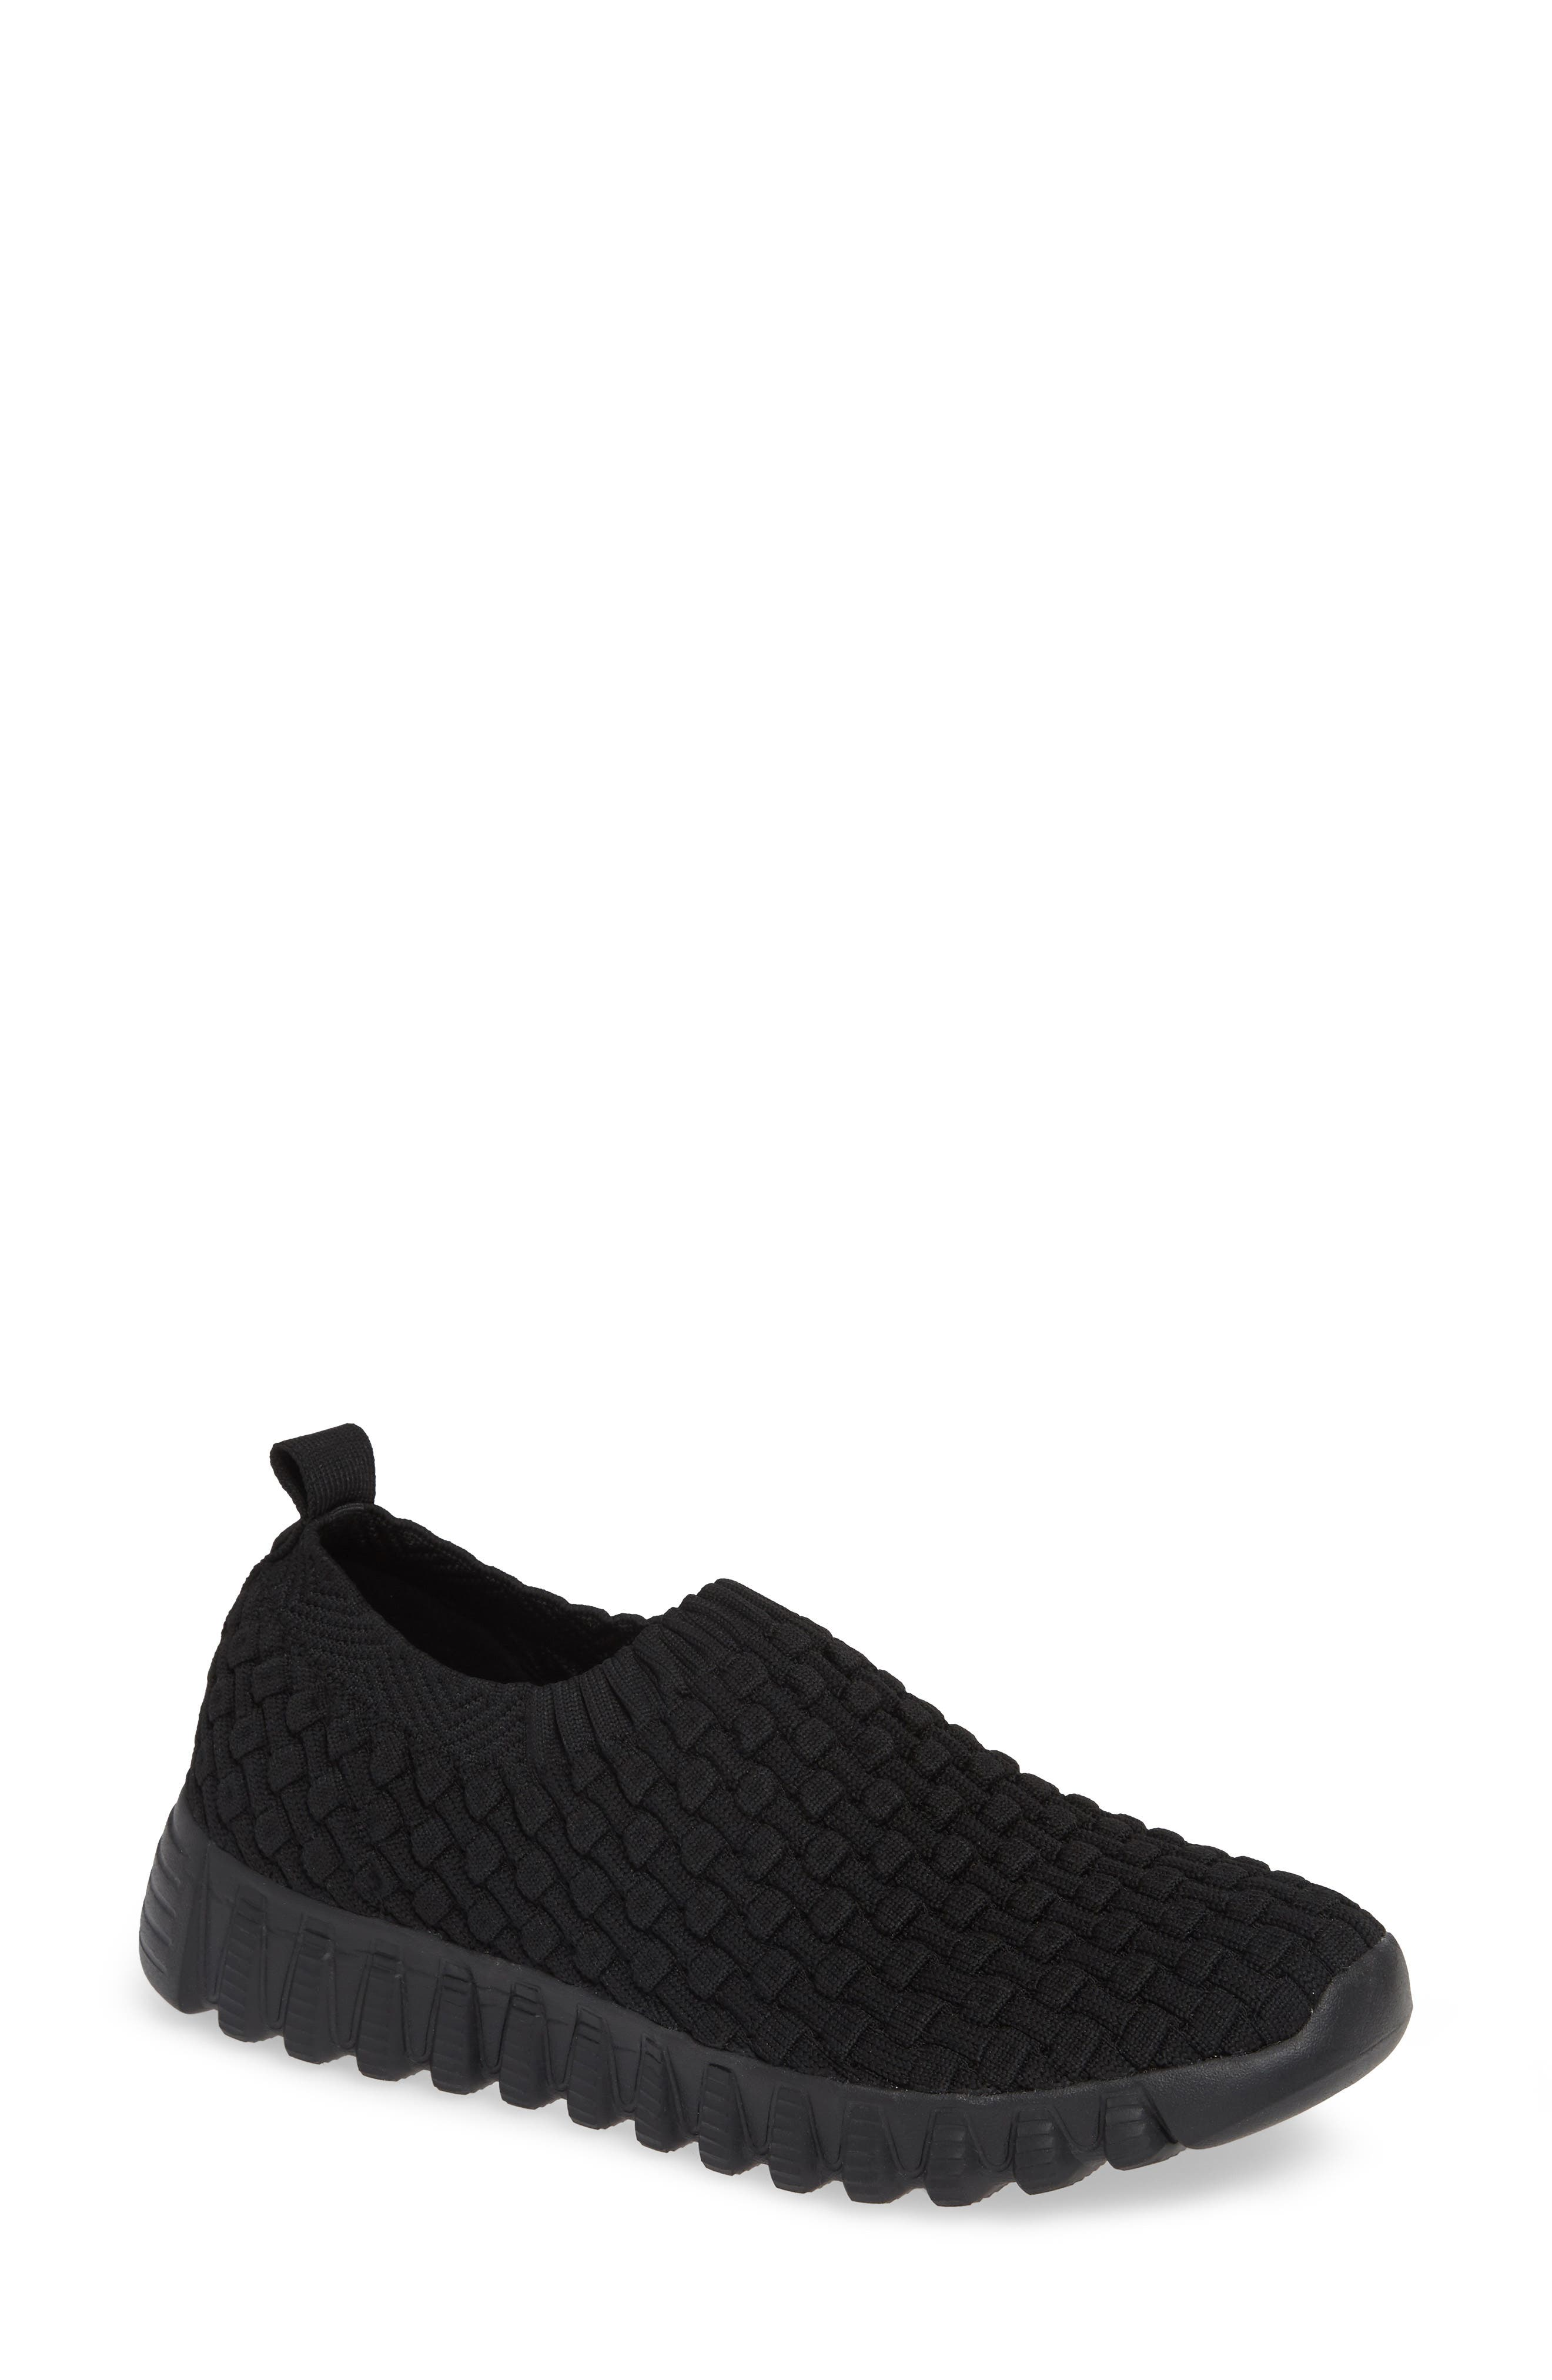 Tender Slip-On Sneaker,                             Main thumbnail 1, color,                             BLACK FABRIC